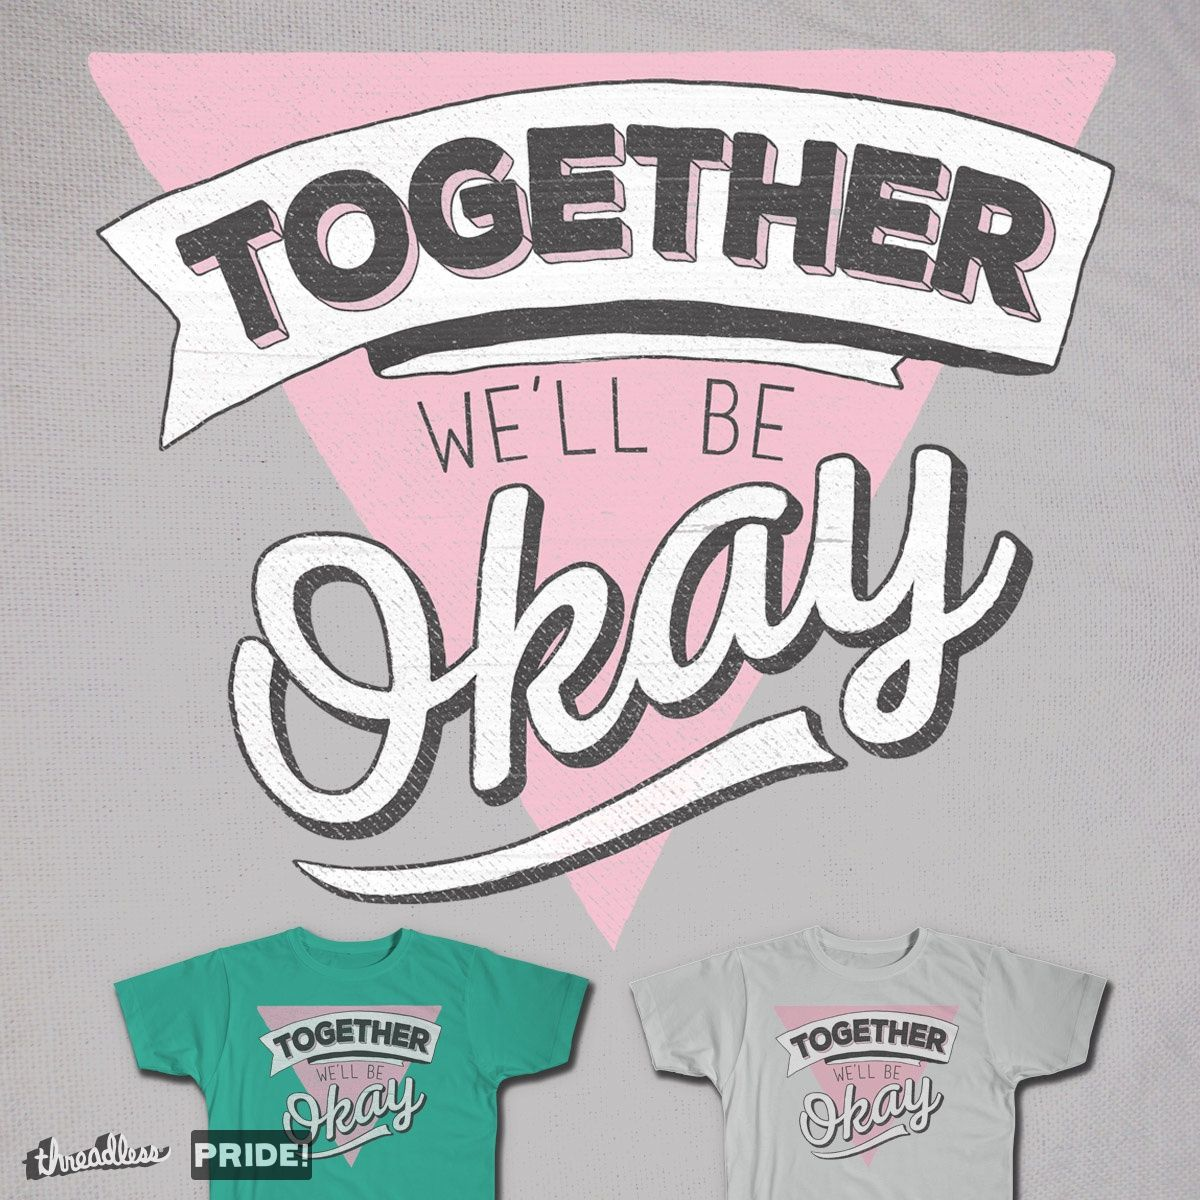 TOGETHER on Threadless